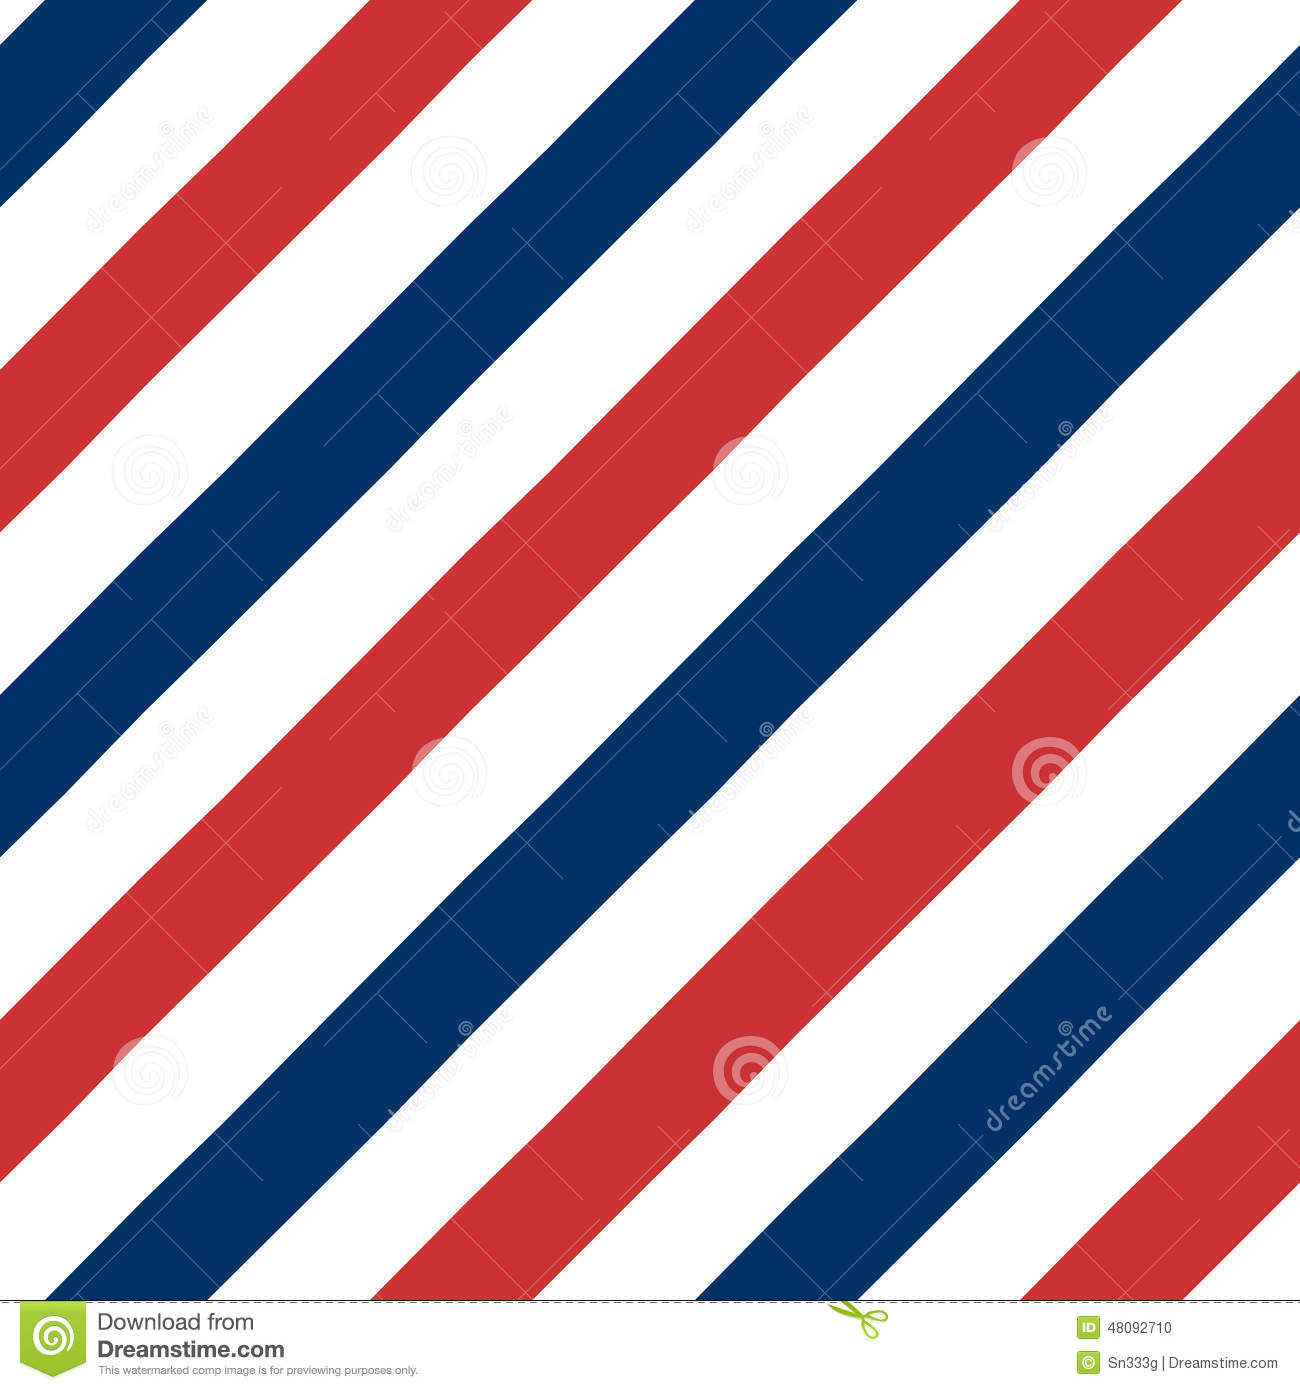 barber background - photo #19